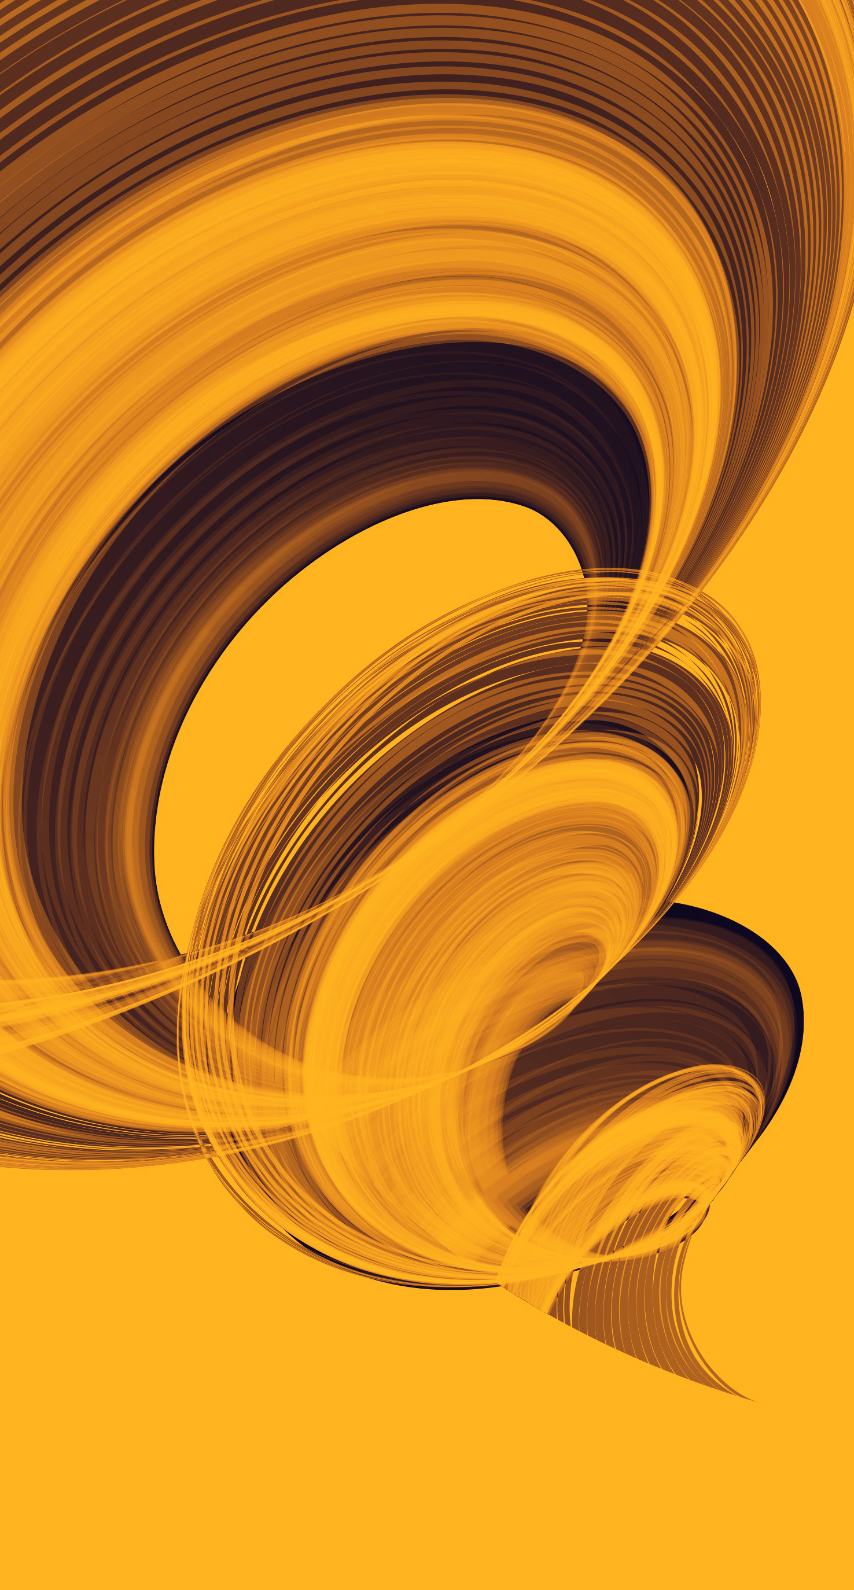 motion, desktop, illustration, shape, line, curve, element, style, twist